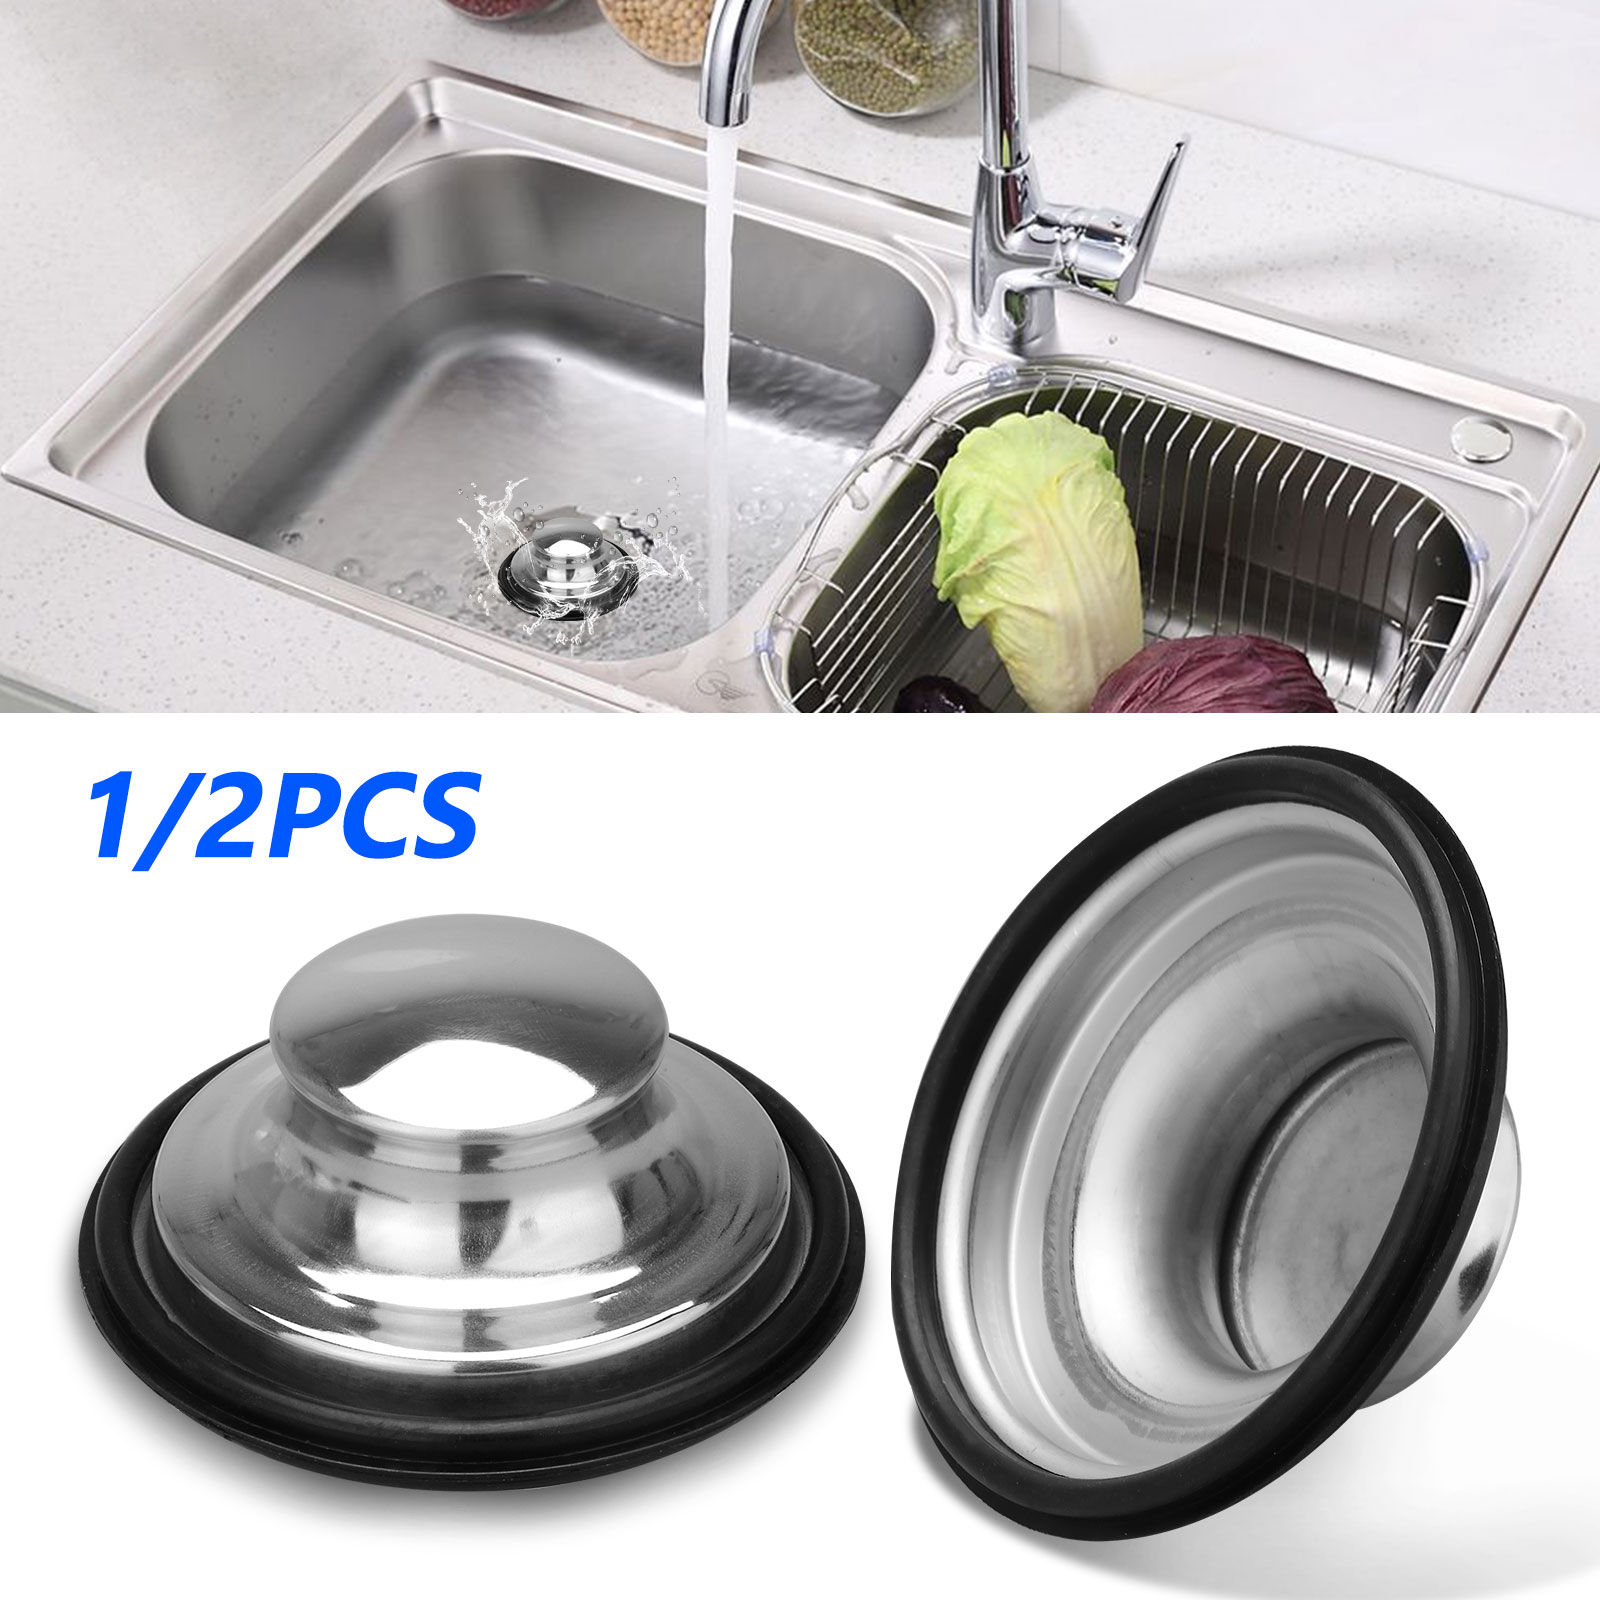 Picture of: Eeekit 2 1pcs Universal Kitchen Sink Stopper Cover Garbage Disposal Drain Stopper 3 5inch Diameter Stainless Steel Kitchen Sink Plug Cover Replacement For Standard Kitchen Drain Kitchen Accessories Walmart Com Walmart Com